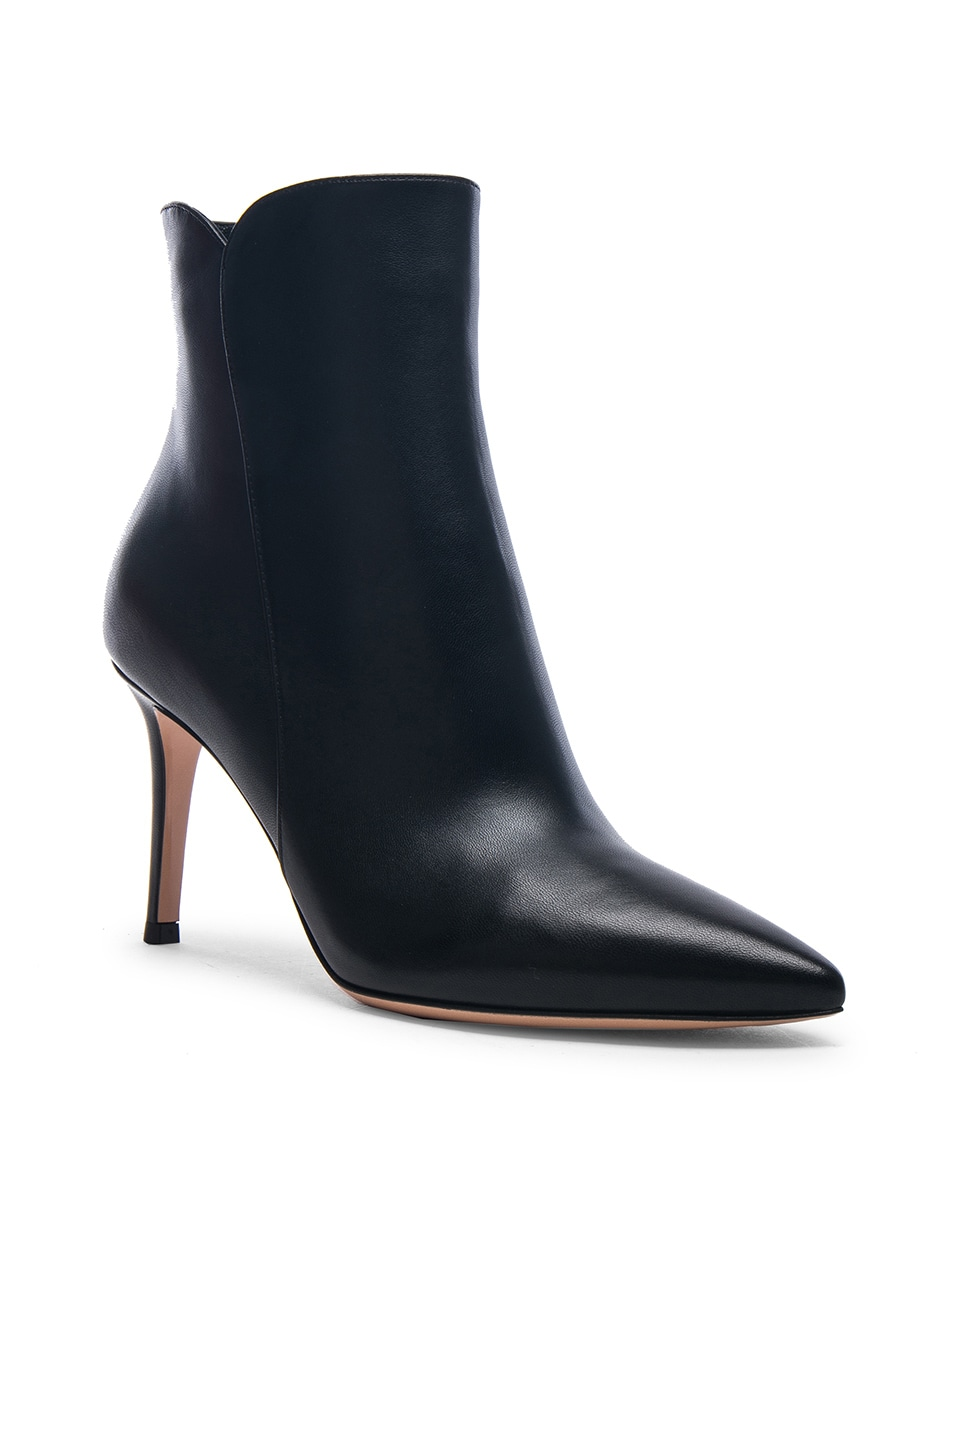 Image 2 of Gianvito Rossi Nappa Leather Levy 85 Ankle Boots in Black